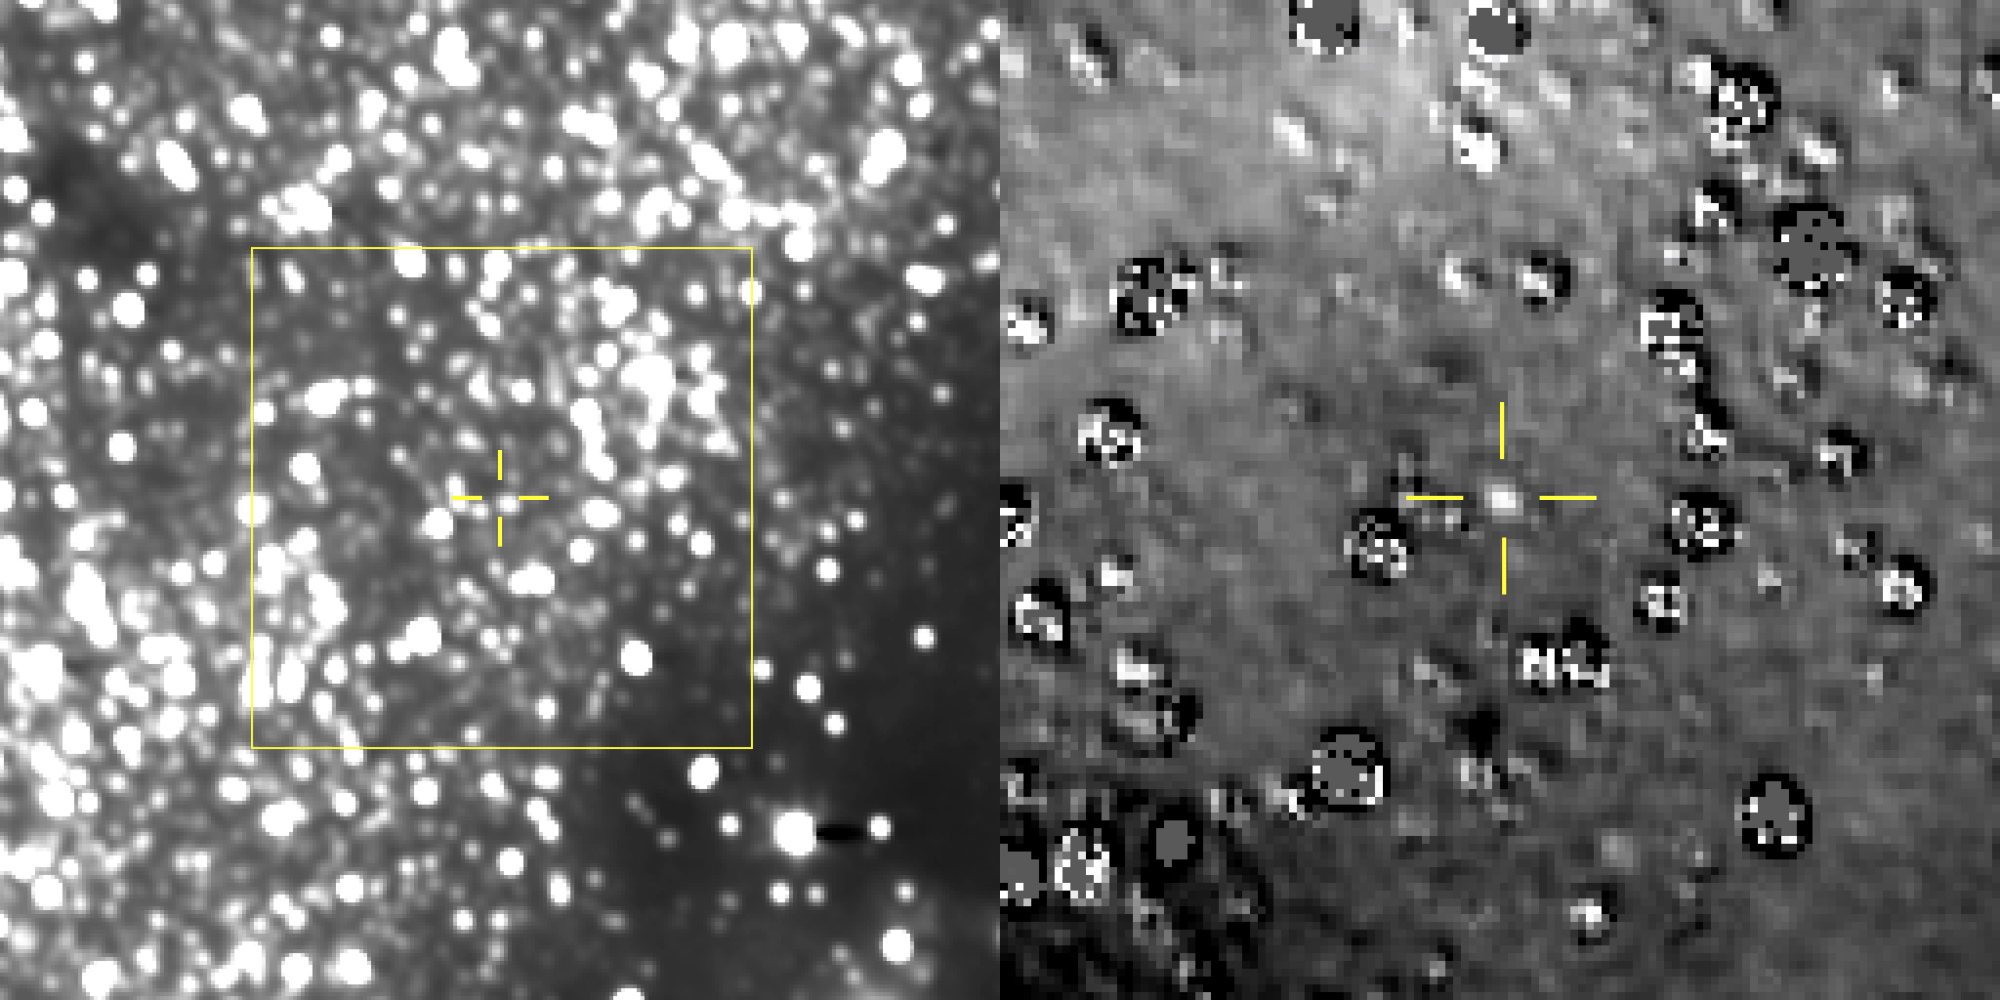 nh_ultima_thule_first_detection_v3.jpg